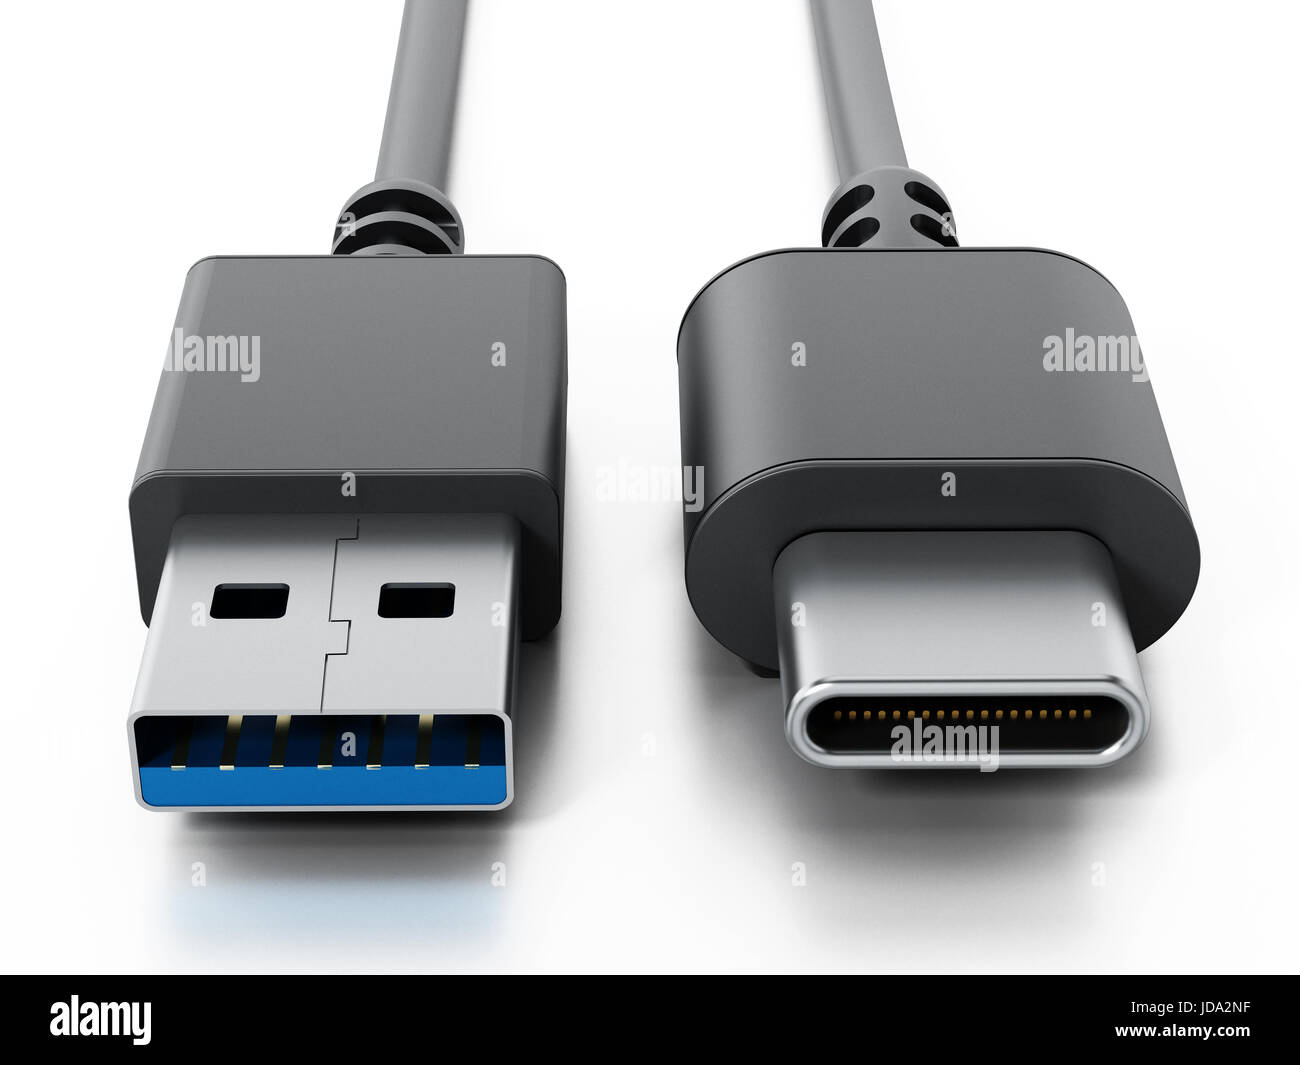 Usb 3 0 Stock Photos & Usb 3 0 Stock Images - Alamy